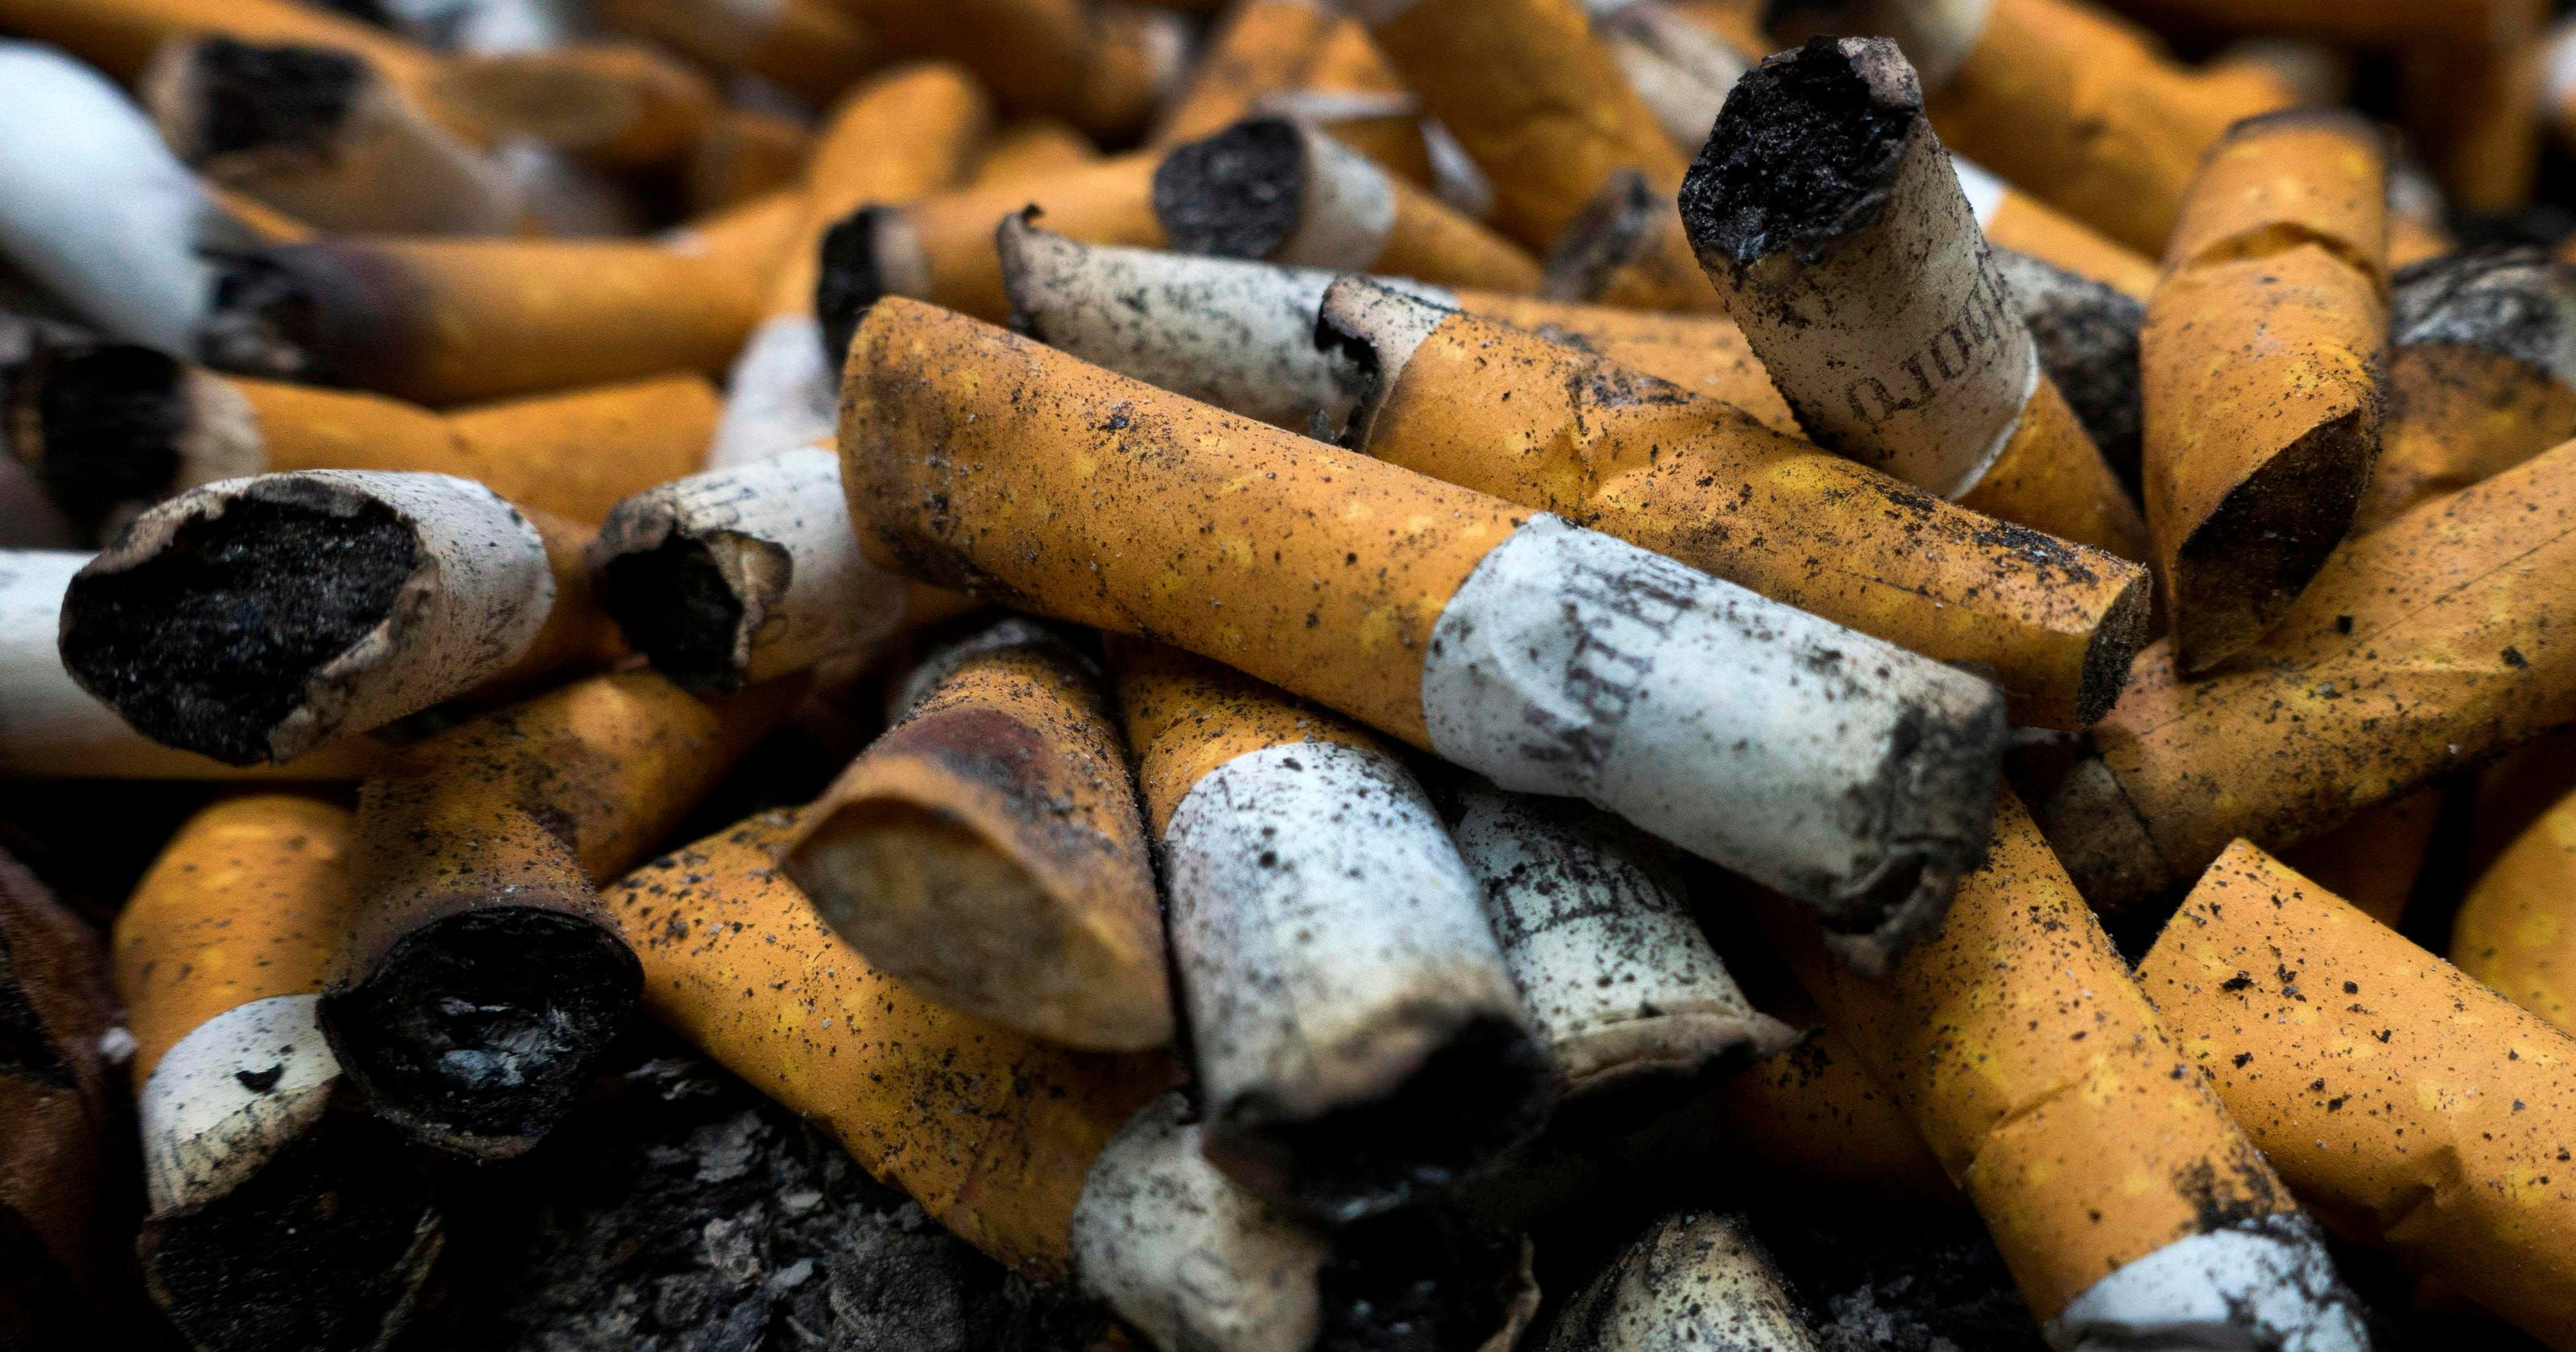 Smoking in US: About 14% of adults smoke, hitting new all-time low